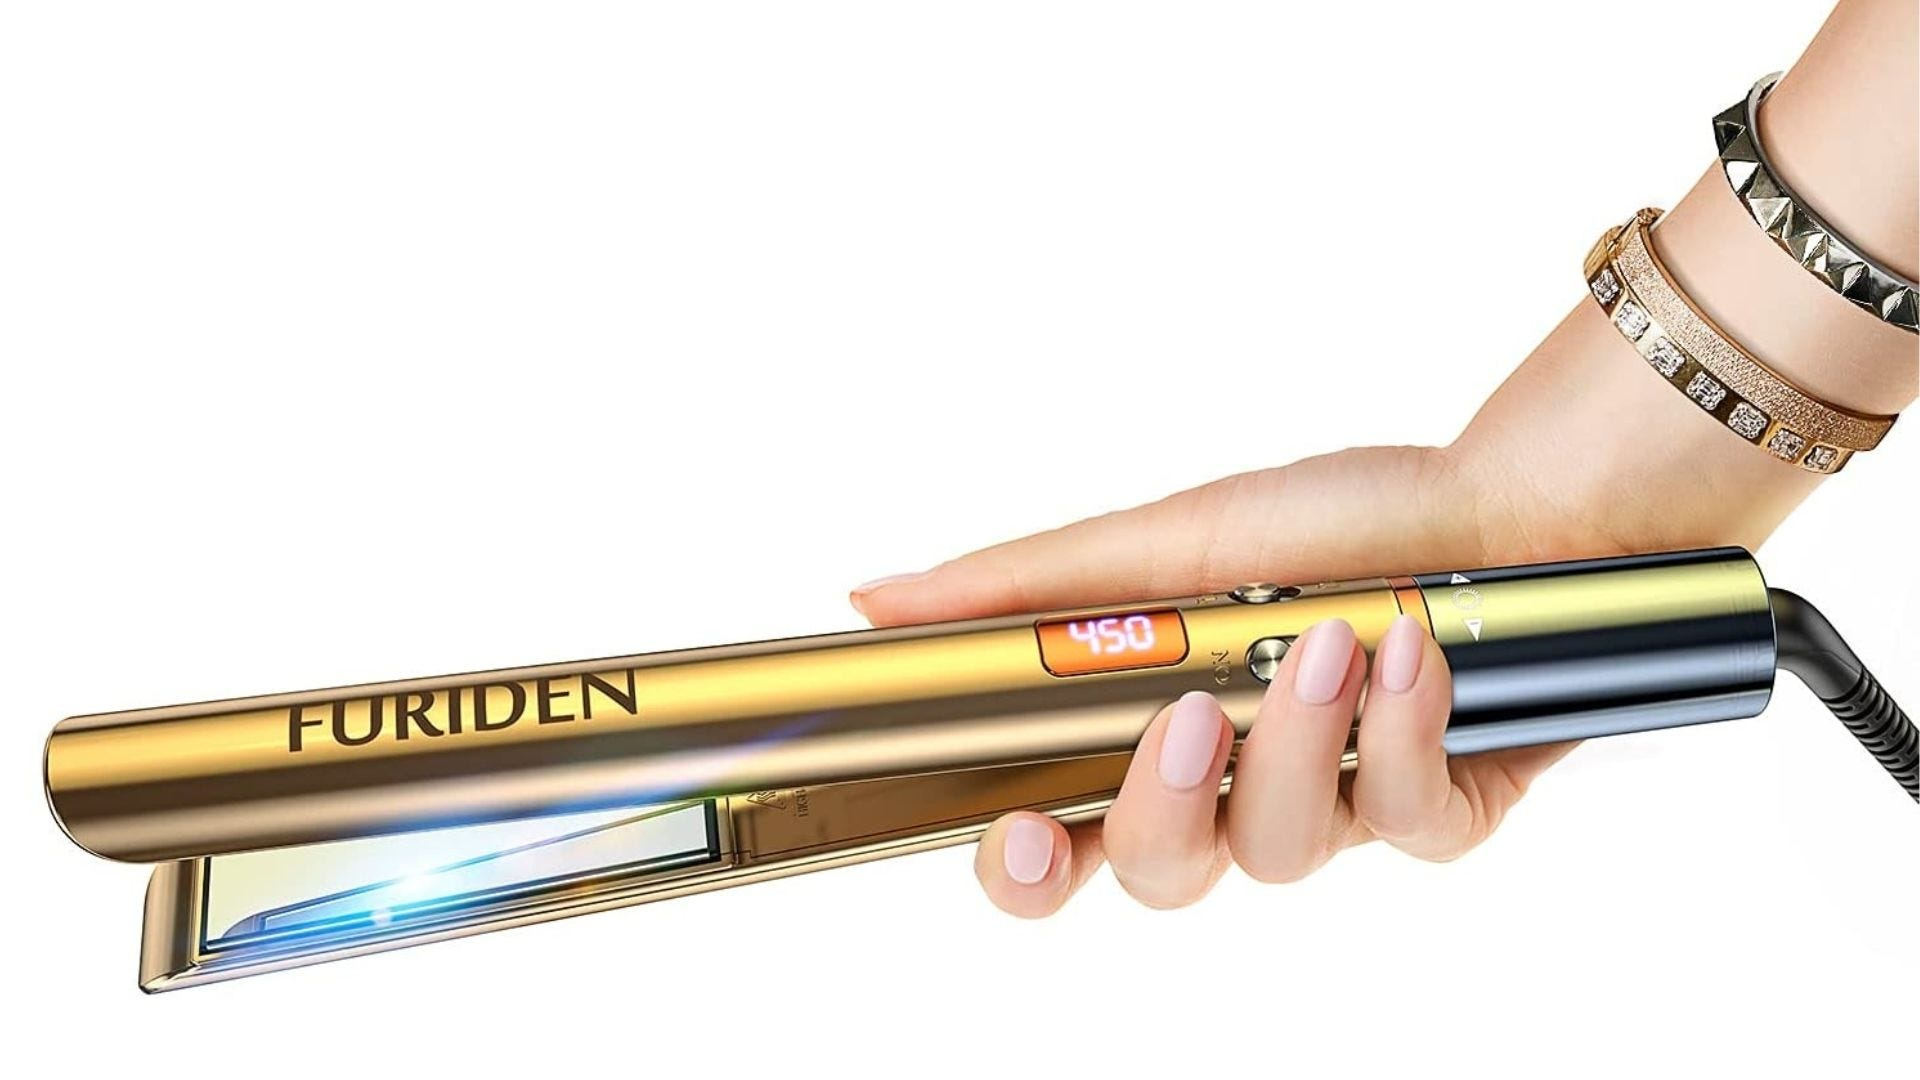 Someone holds a gold hair straightener in their hand